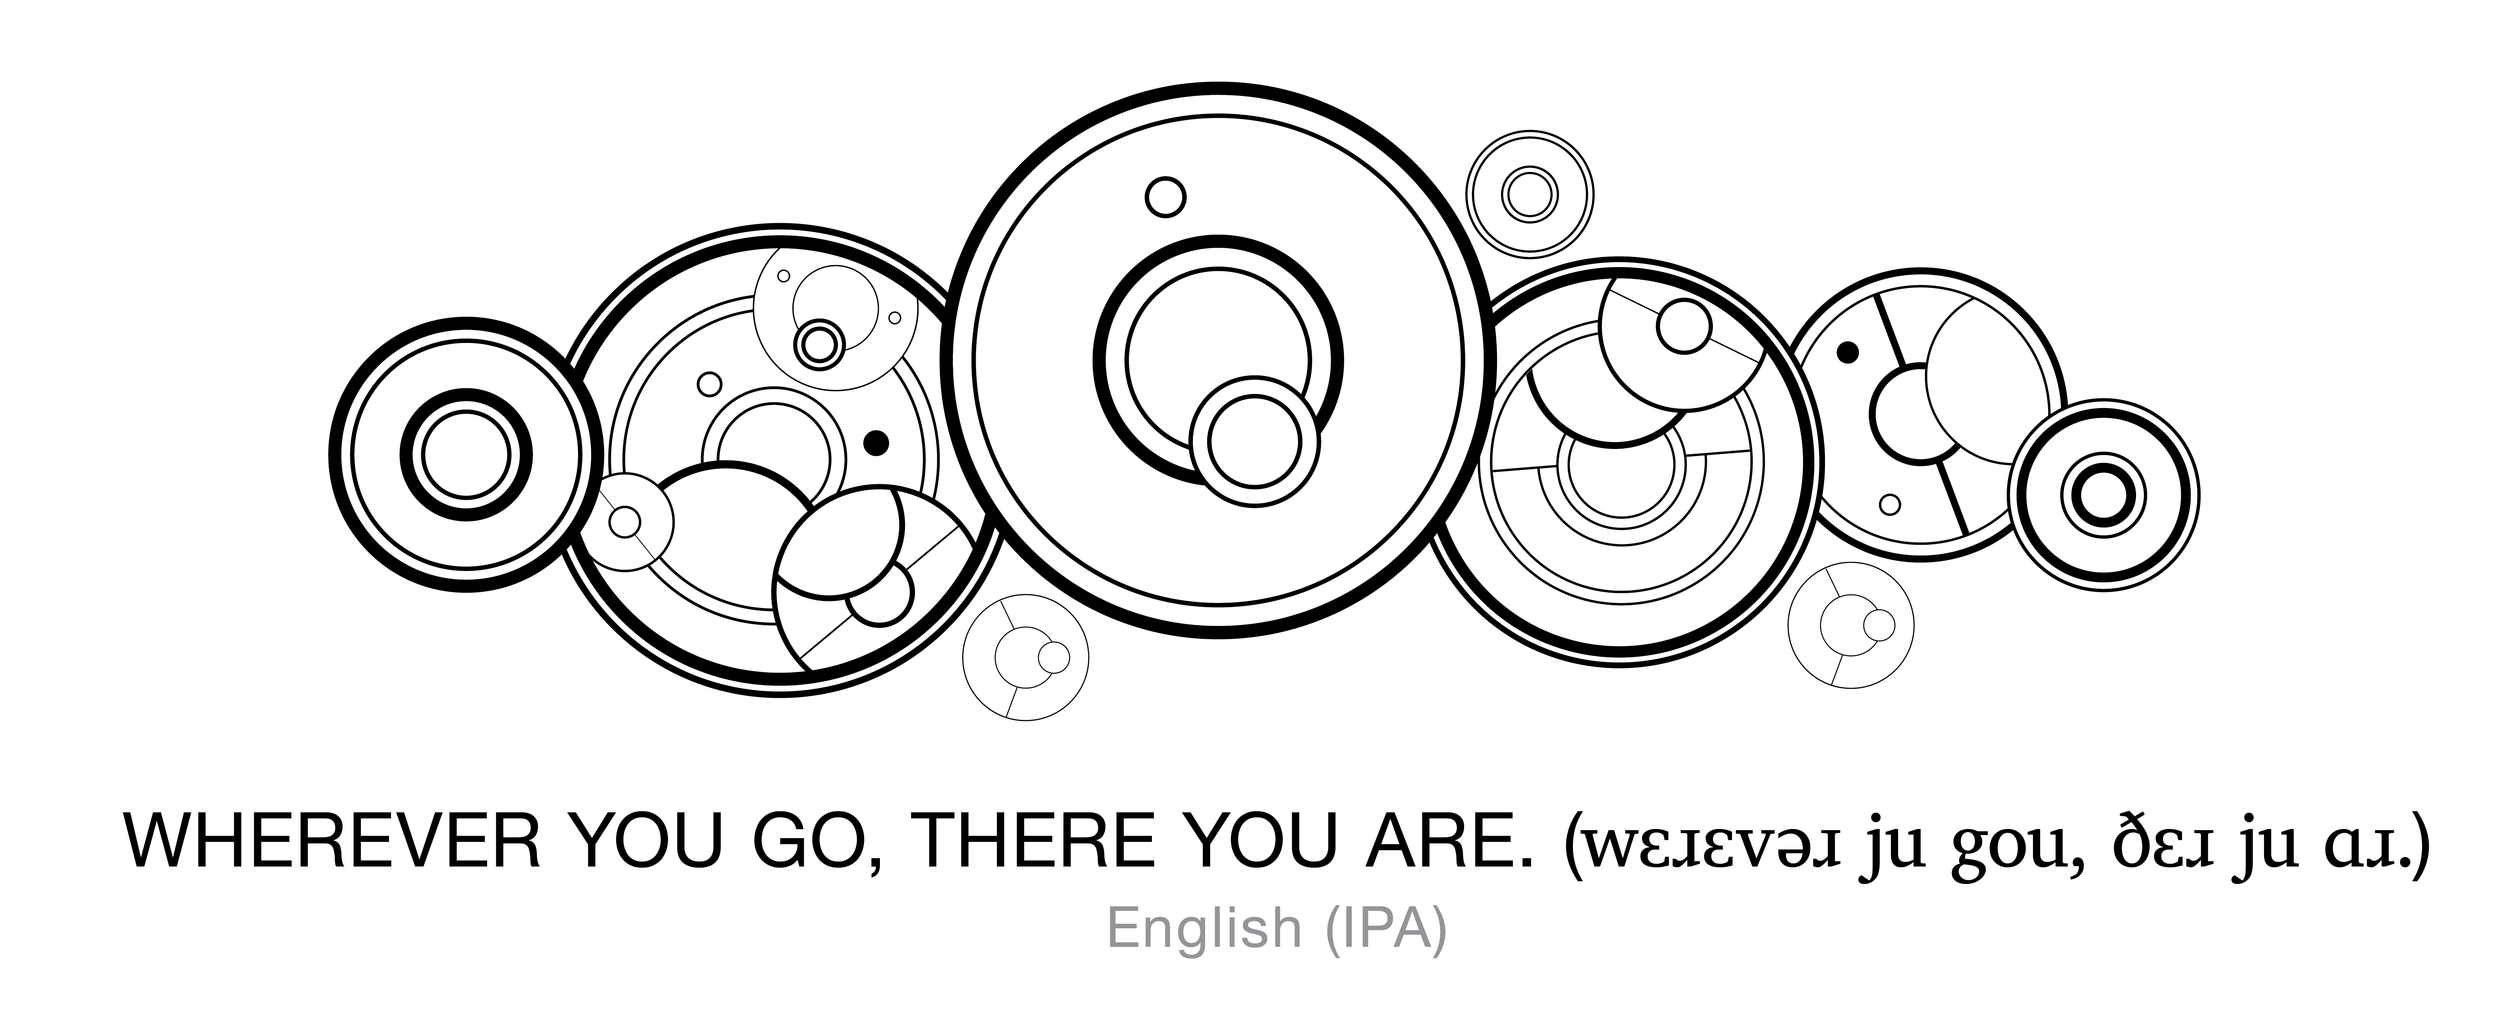 WhereverYouGoThereYouAre-02.png